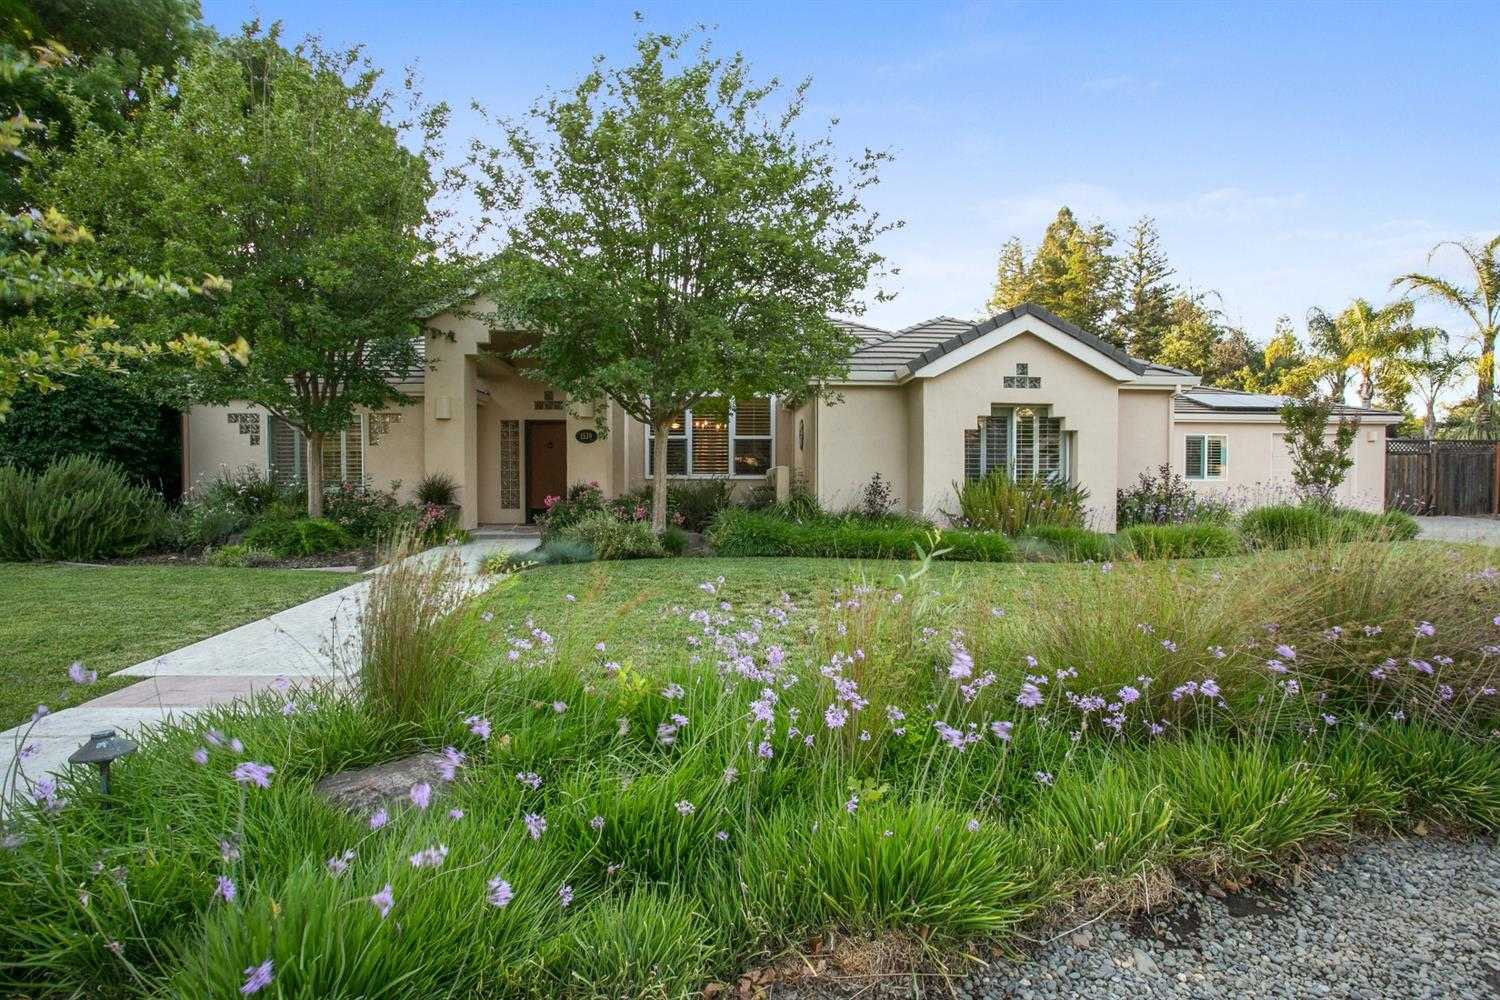 $1,192,000 - 5Br/4Ba -  for Sale in Oakshade, Davis